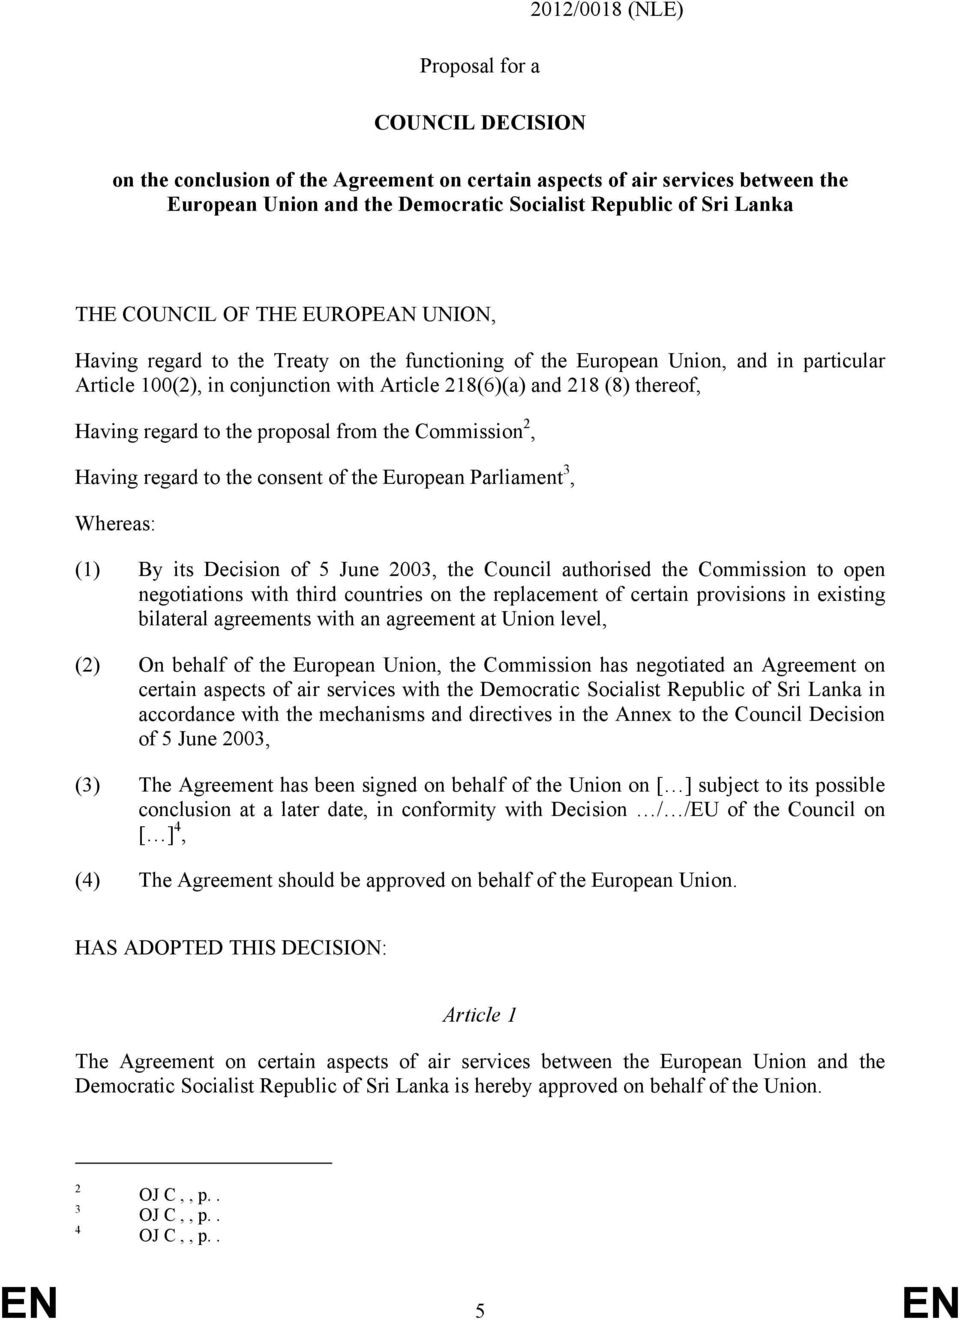 Having regard to the proposal from the Commission 2, Having regard to the consent of the European Parliament 3, Whereas: (1) By its Decision of 5 June 2003, the Council authorised the Commission to